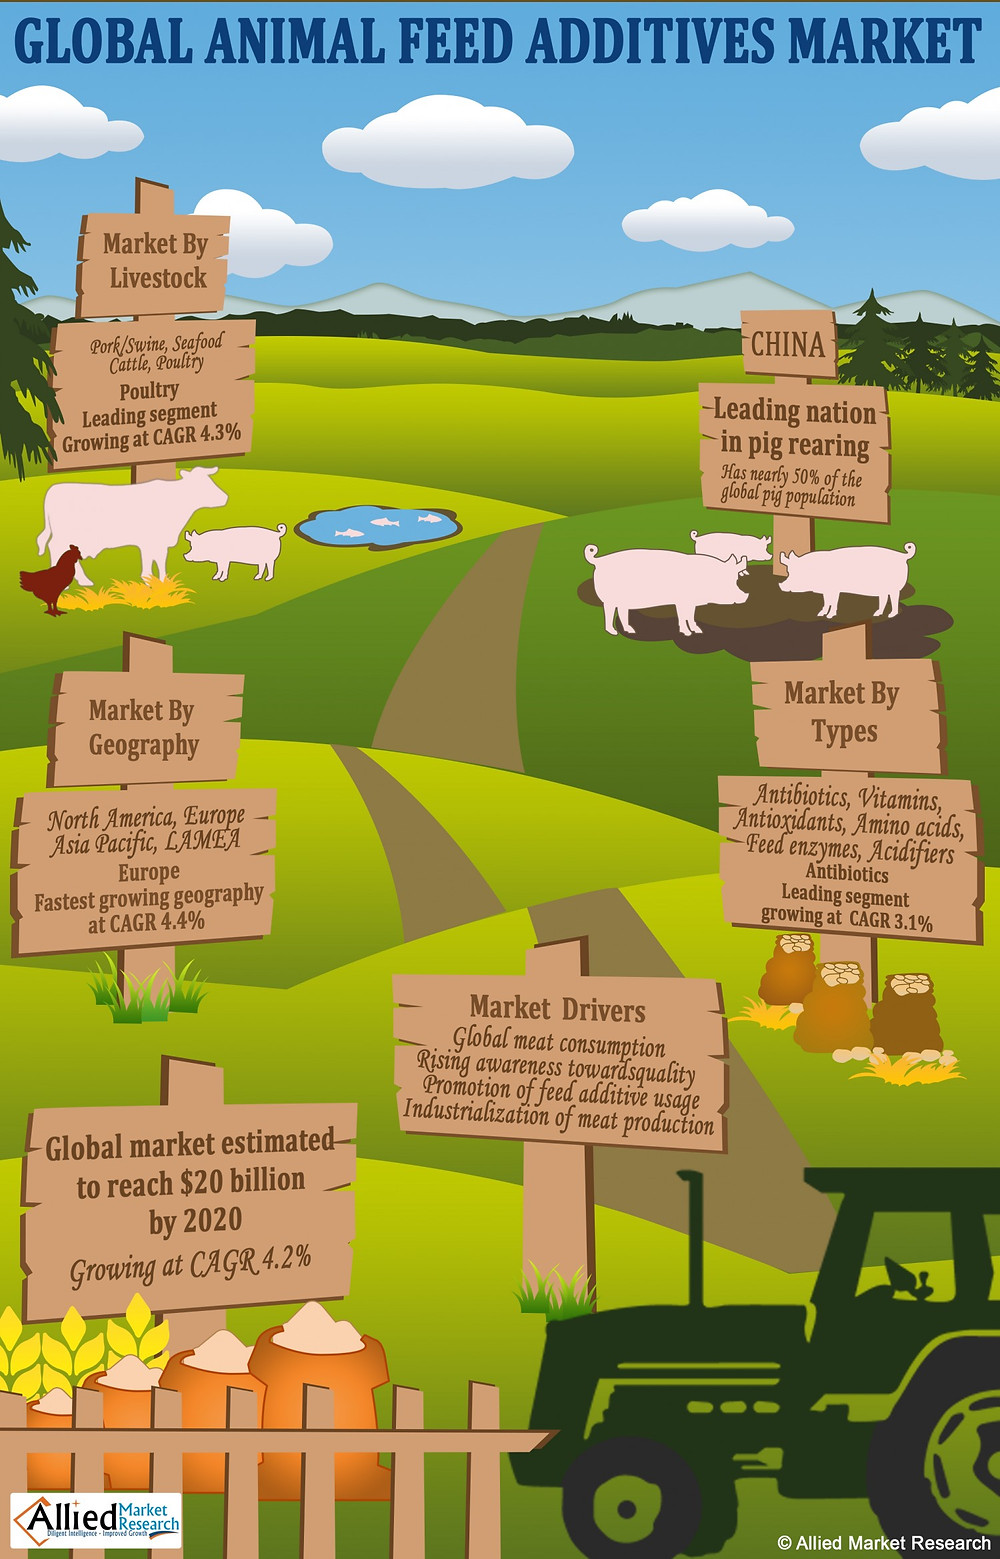 Global Animal Feed Additives Market (Infographic)